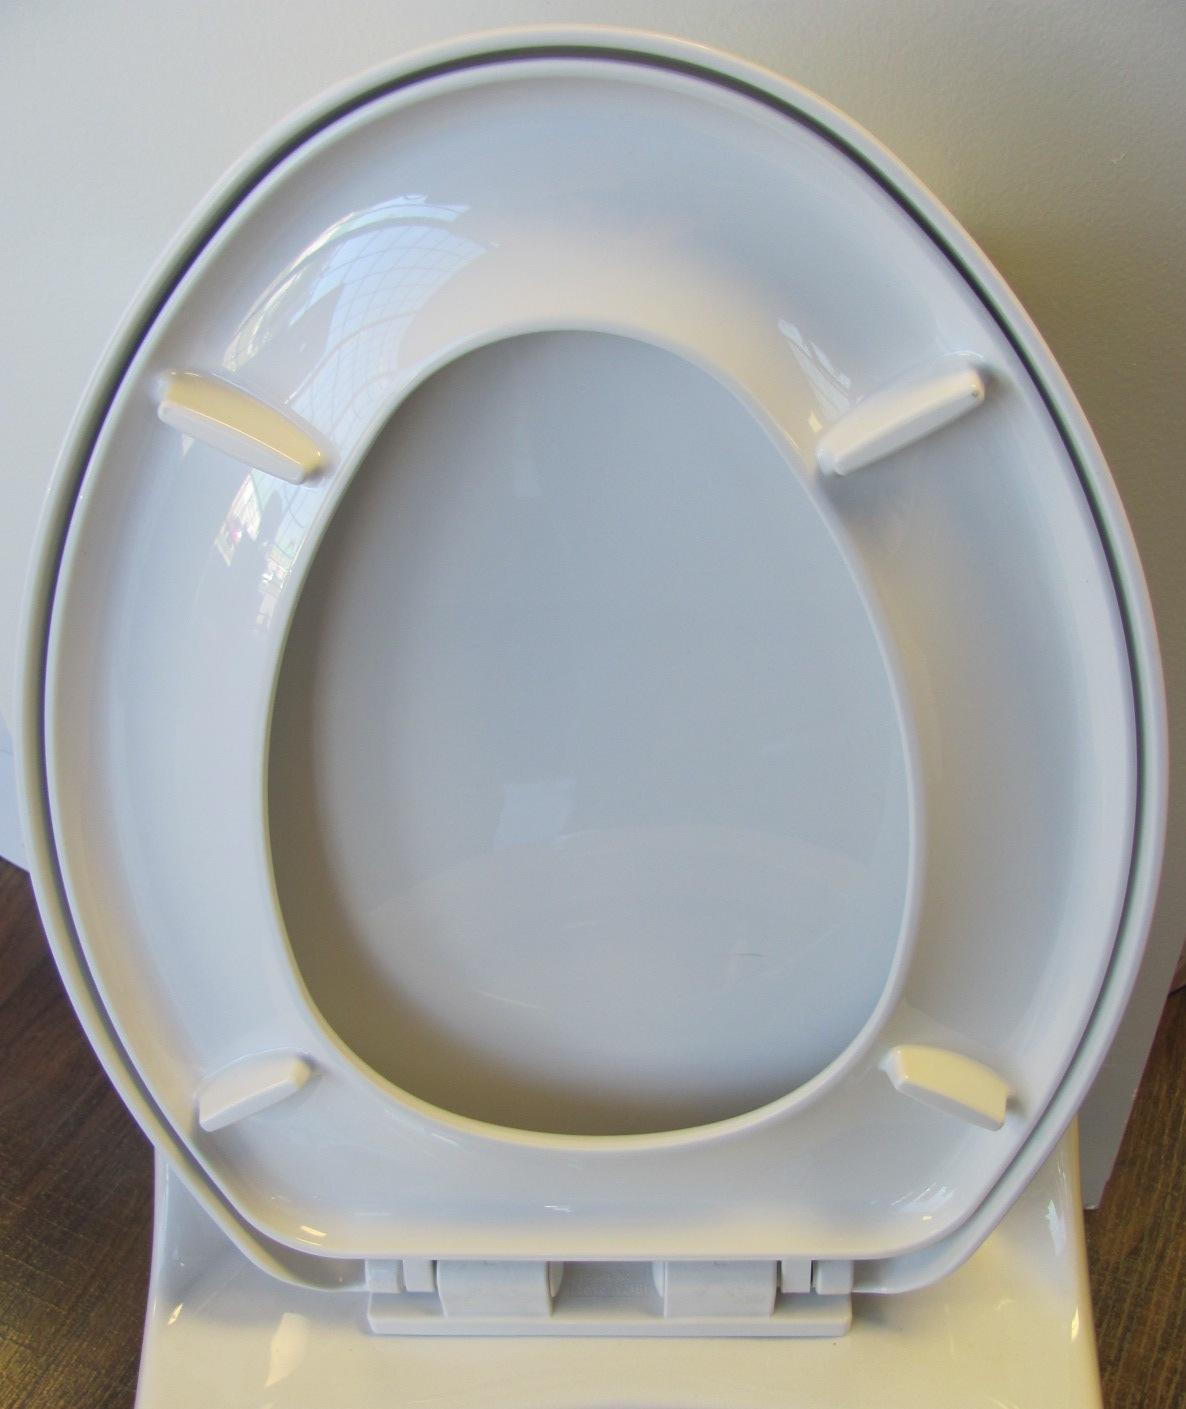 slow close seat for TB133 Toilet